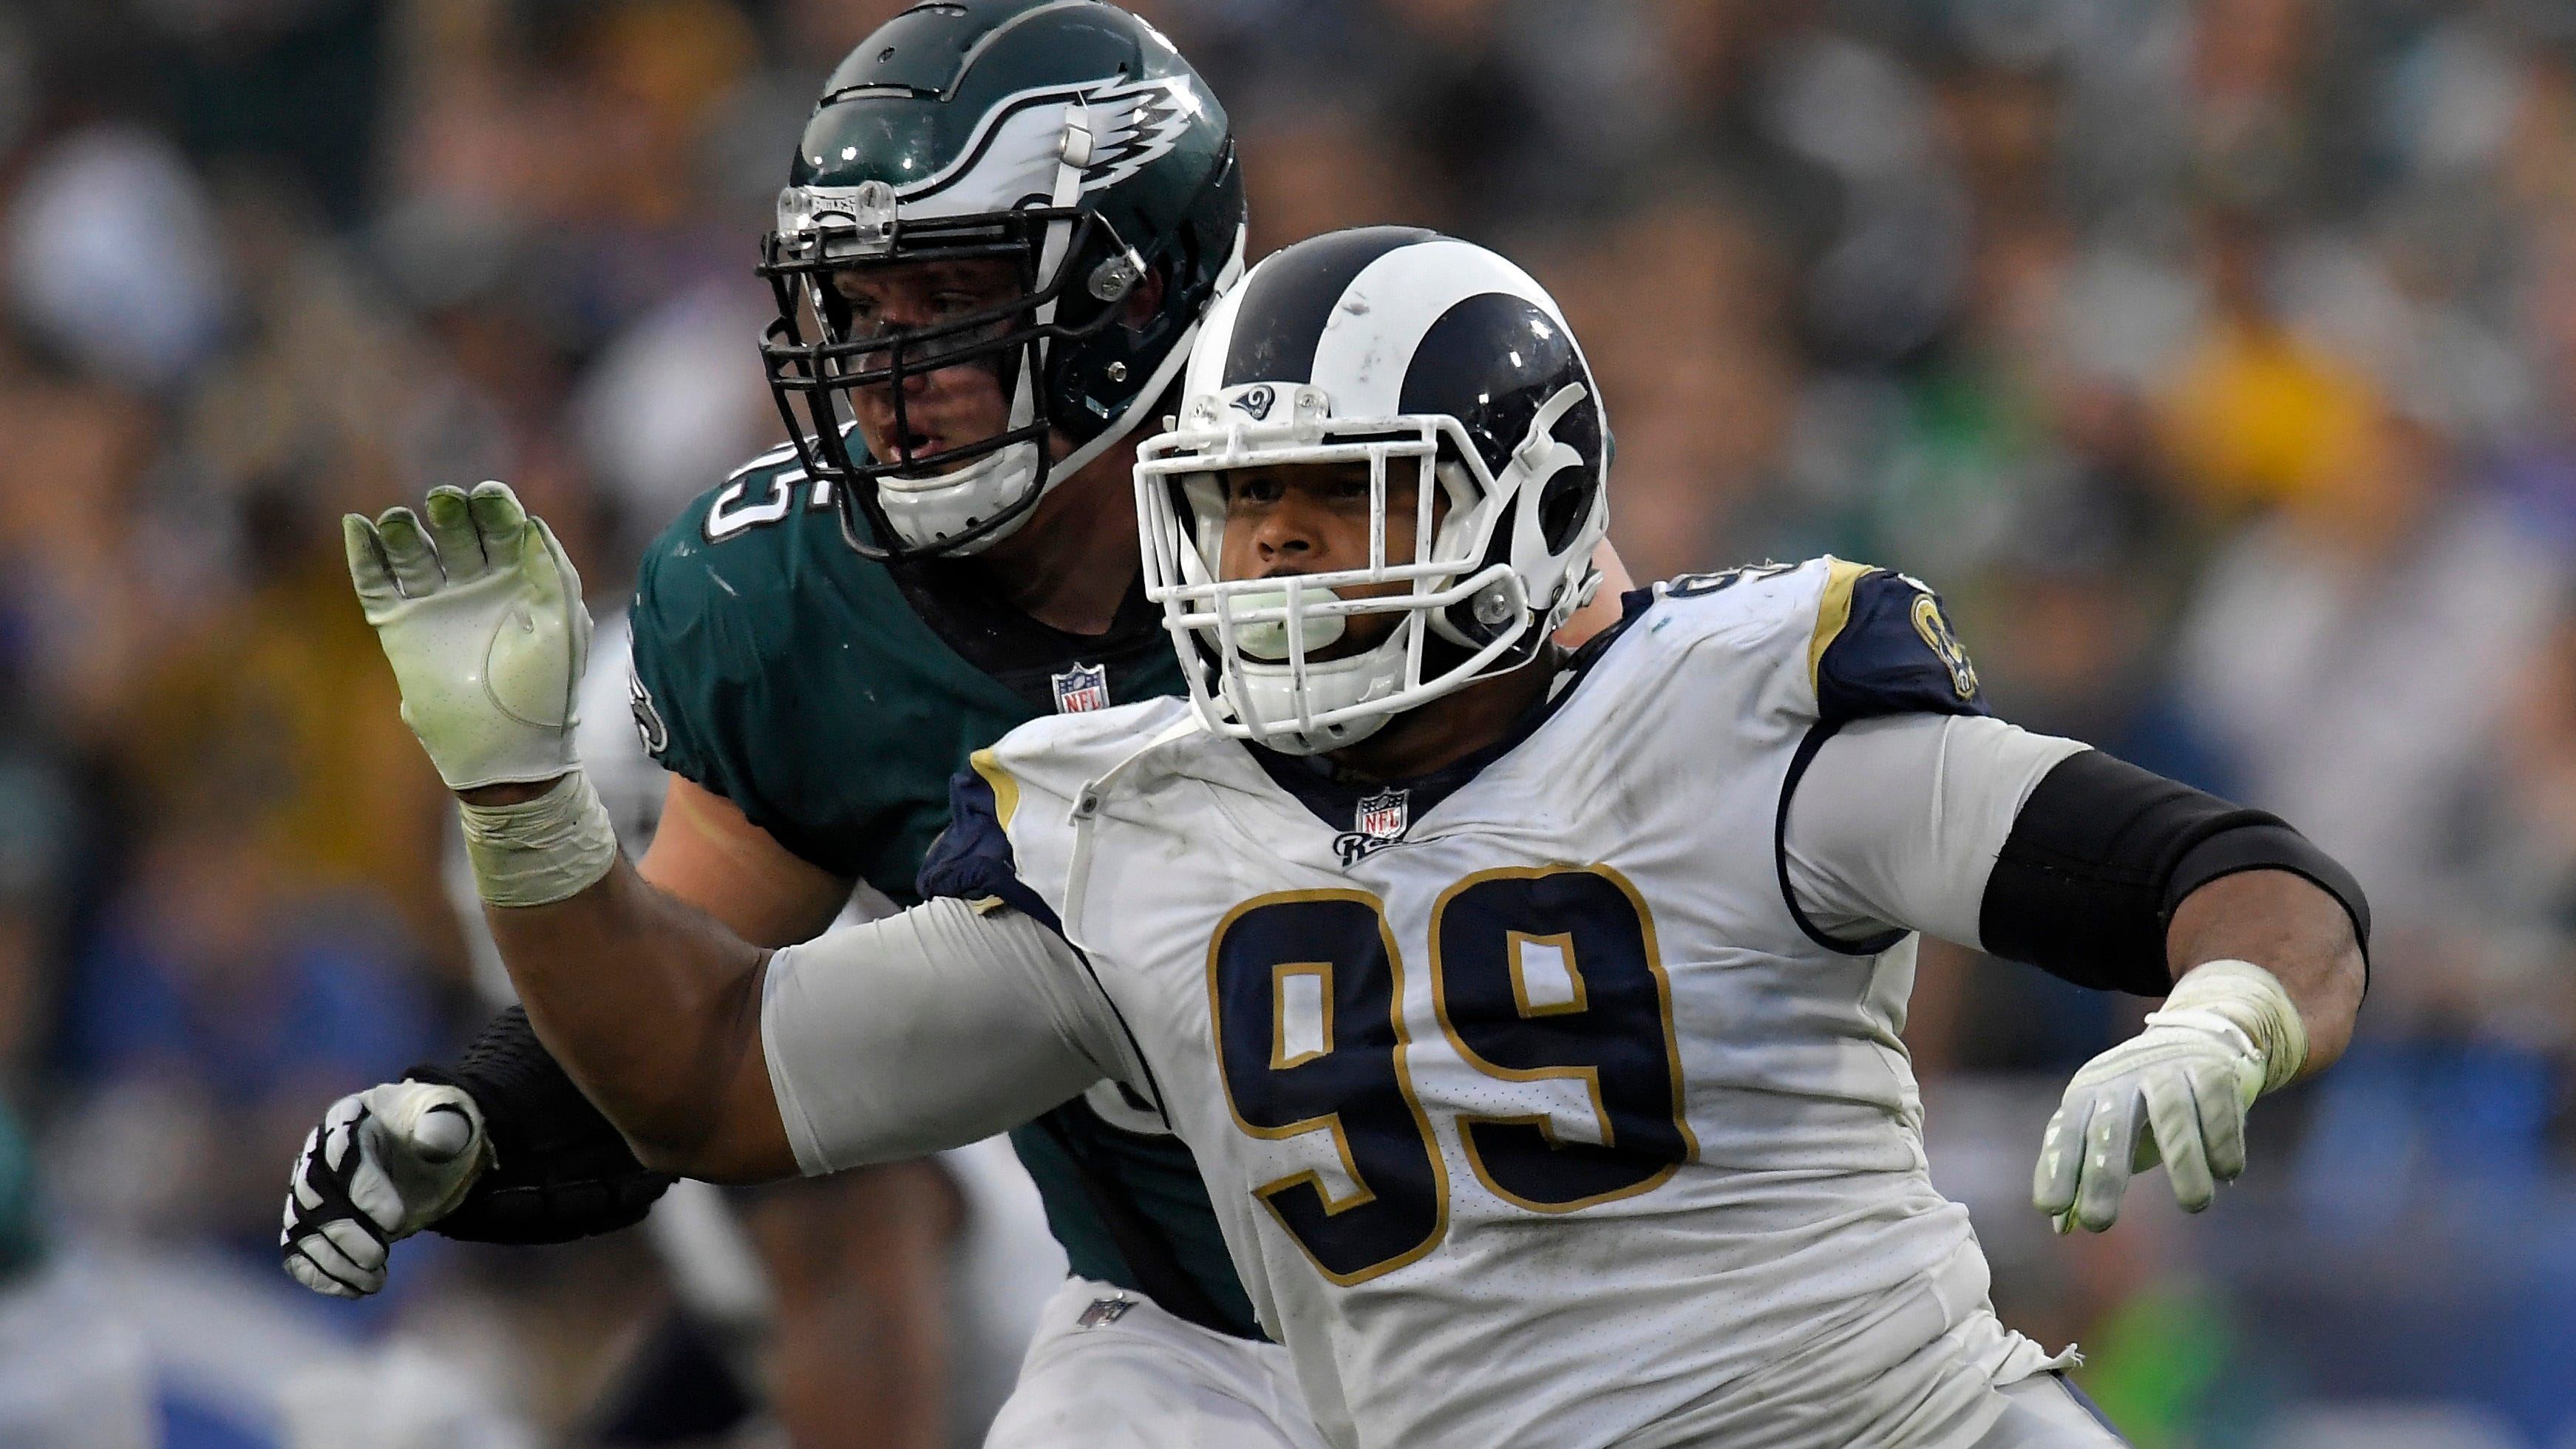 Eagles center Jason Kelce said the Rams defensive tackle duo of Aaron Donald and Ndamukong Suh is the best he's ever seen in his career